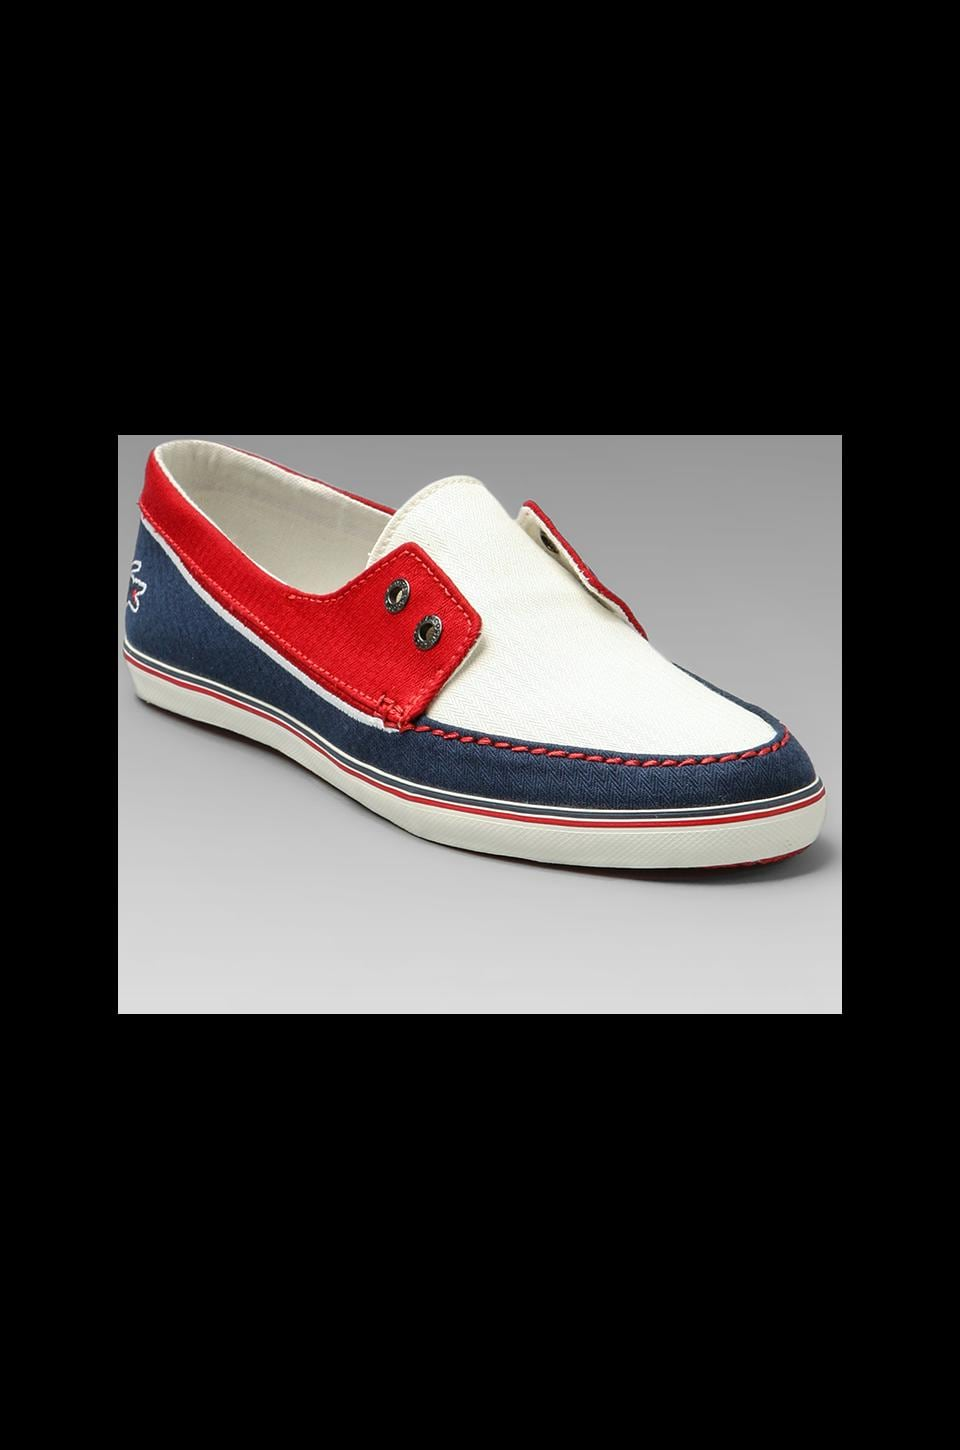 Lacoste Lanas AP in White/Navy/Red